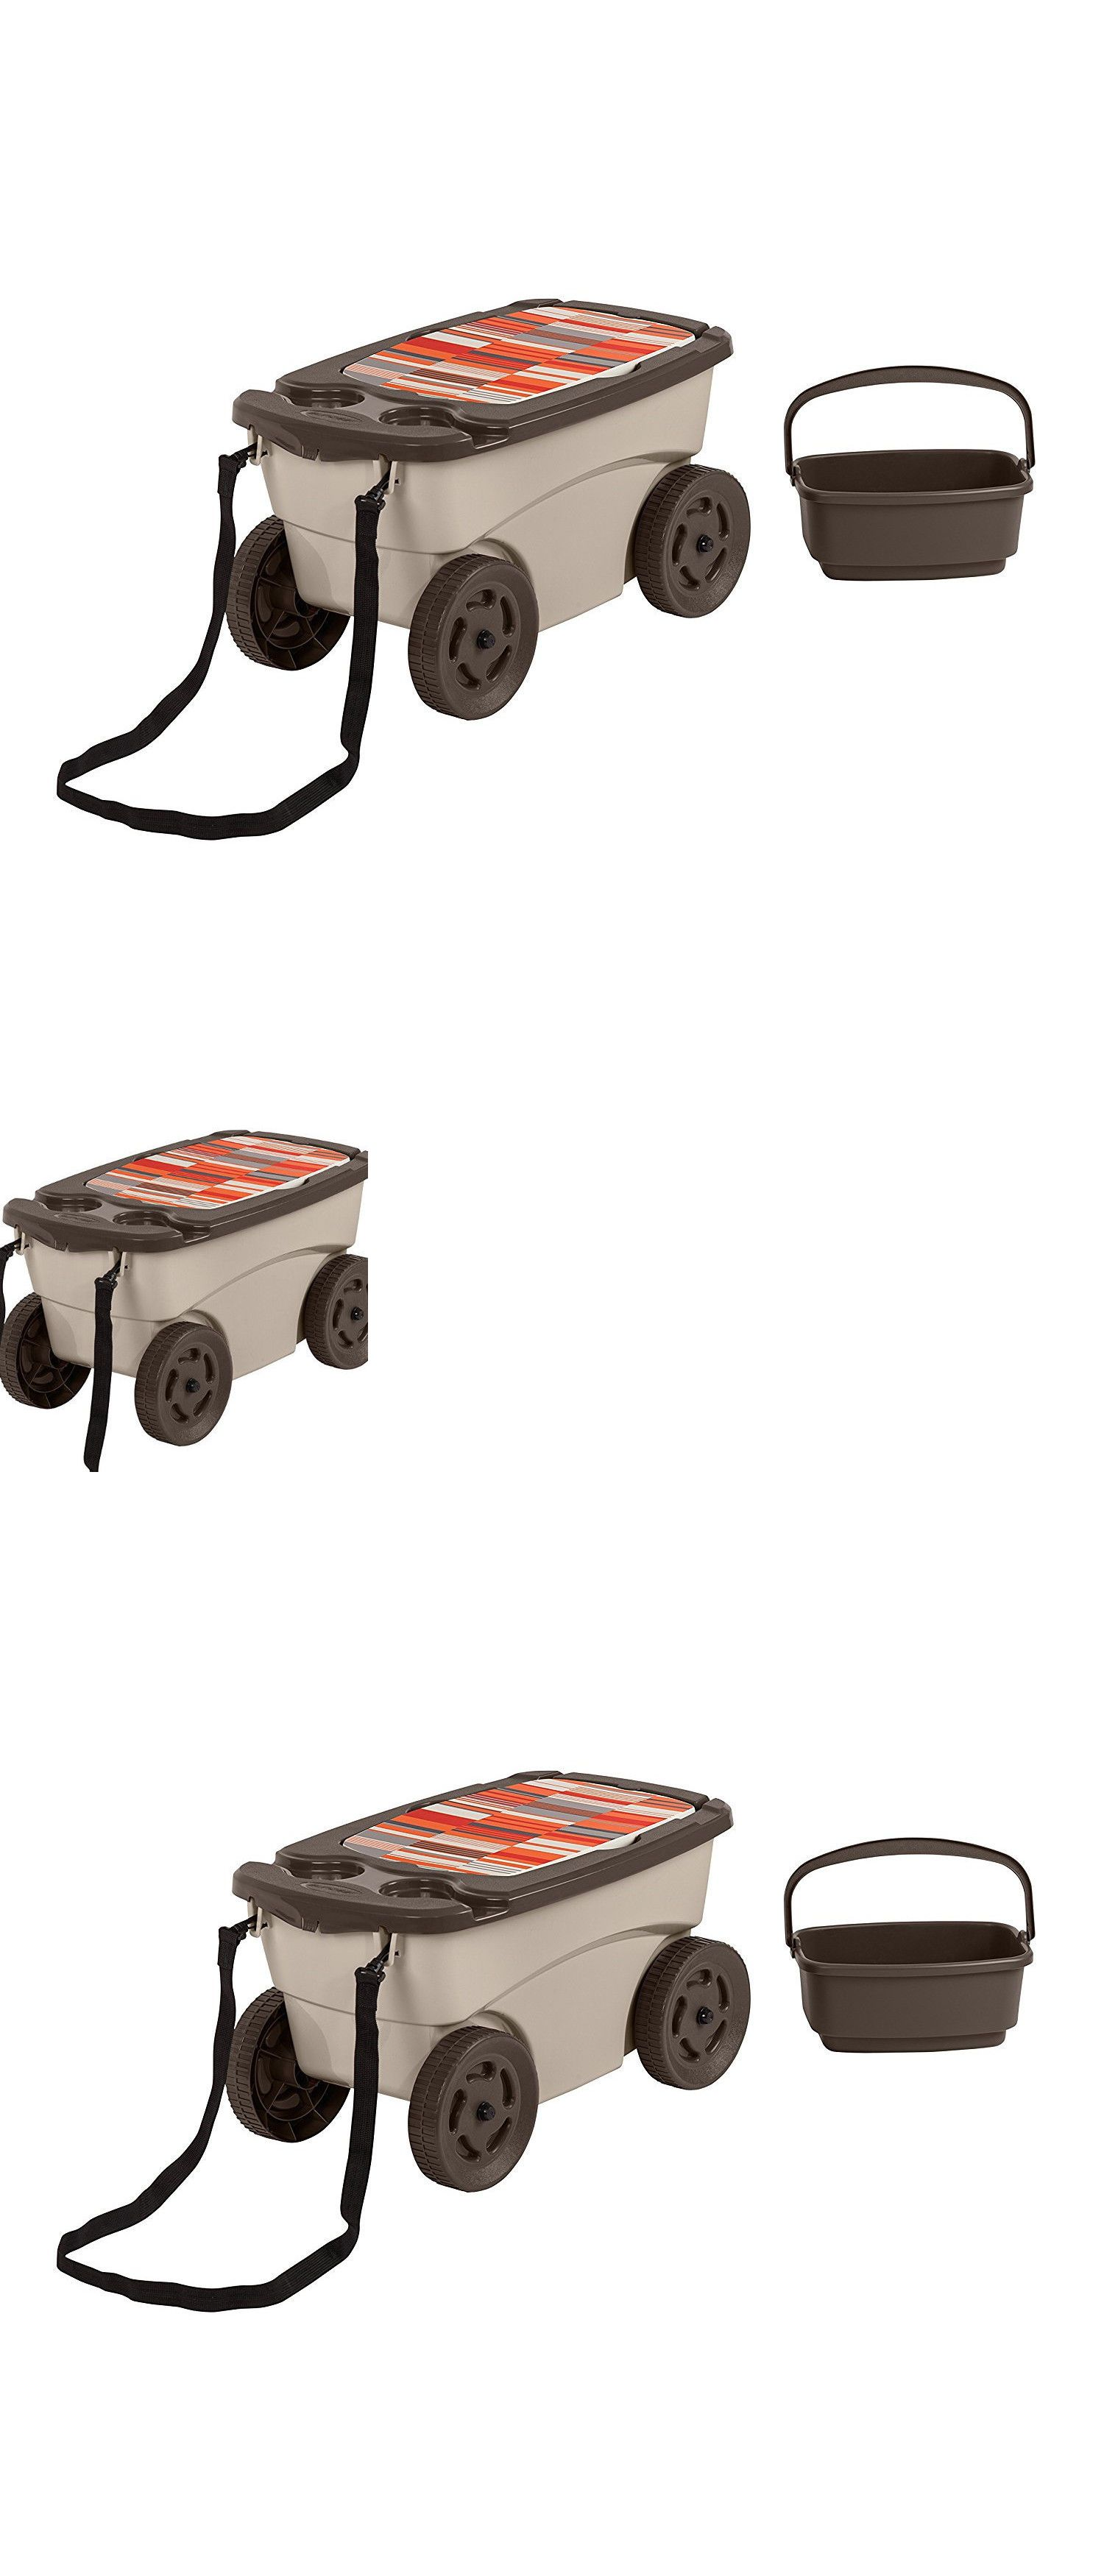 Garden Kneelers Pads And Seats 75669: Portable Garden Scooter Seat Supply  Tool Drink Holder Orange